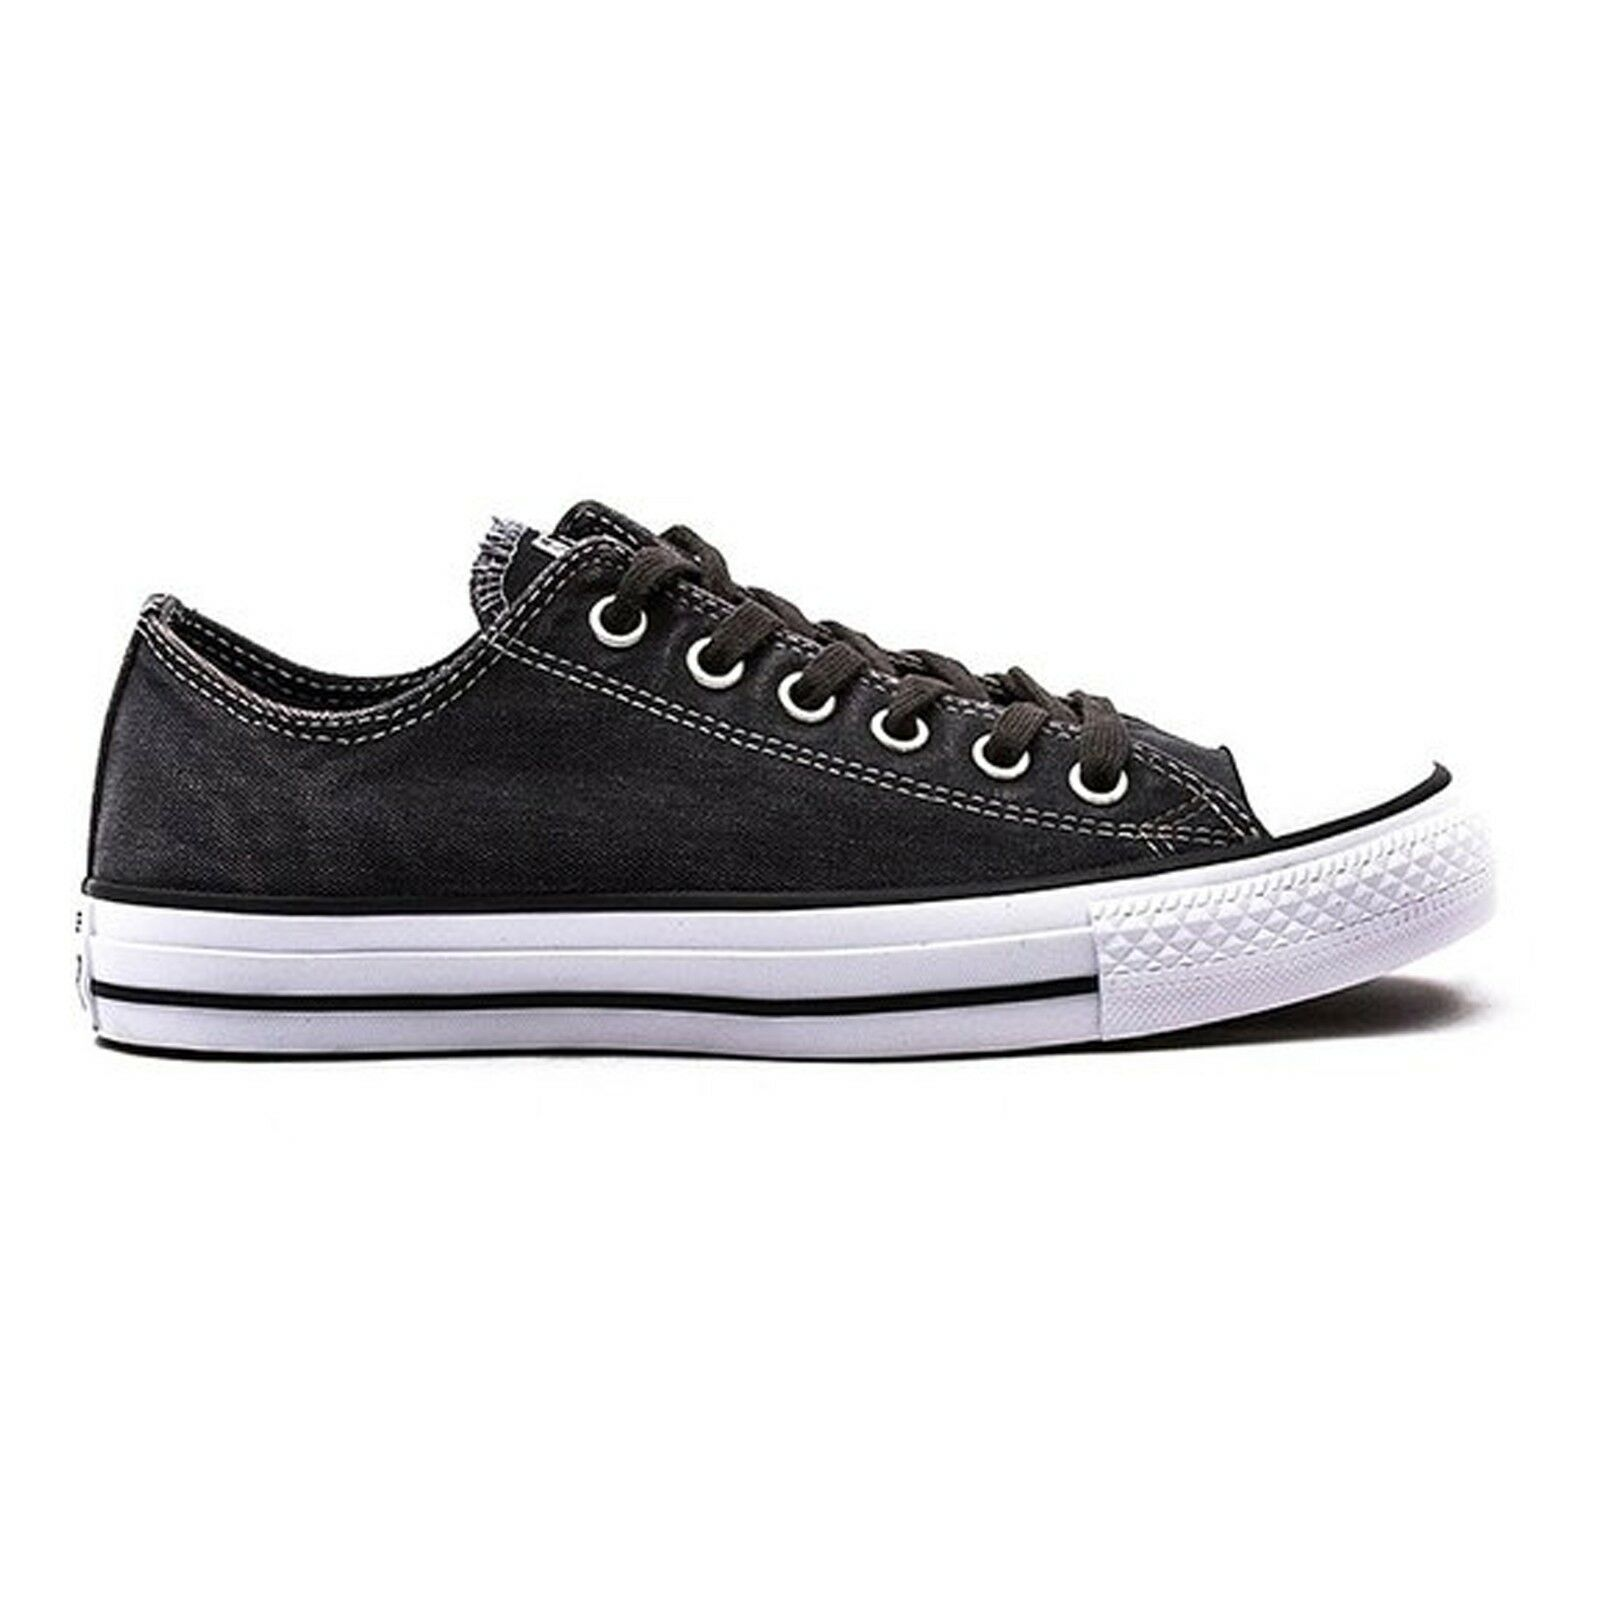 Converse CT W Storm Wind Women's Sneakers Chuck Taylor All Star Low shoes